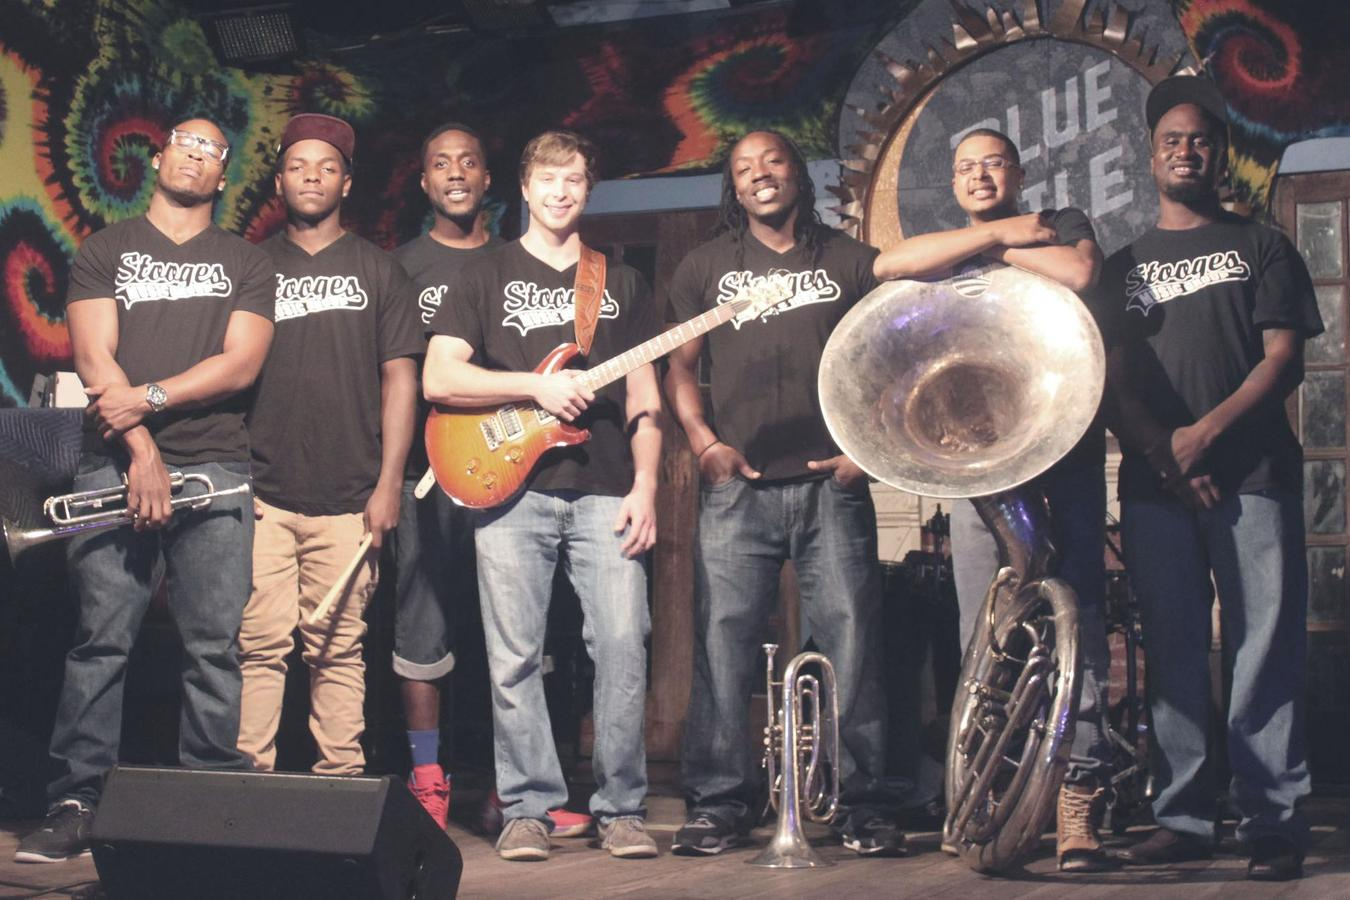 Stooges Brass Band Sxsw 2015 Event Schedule